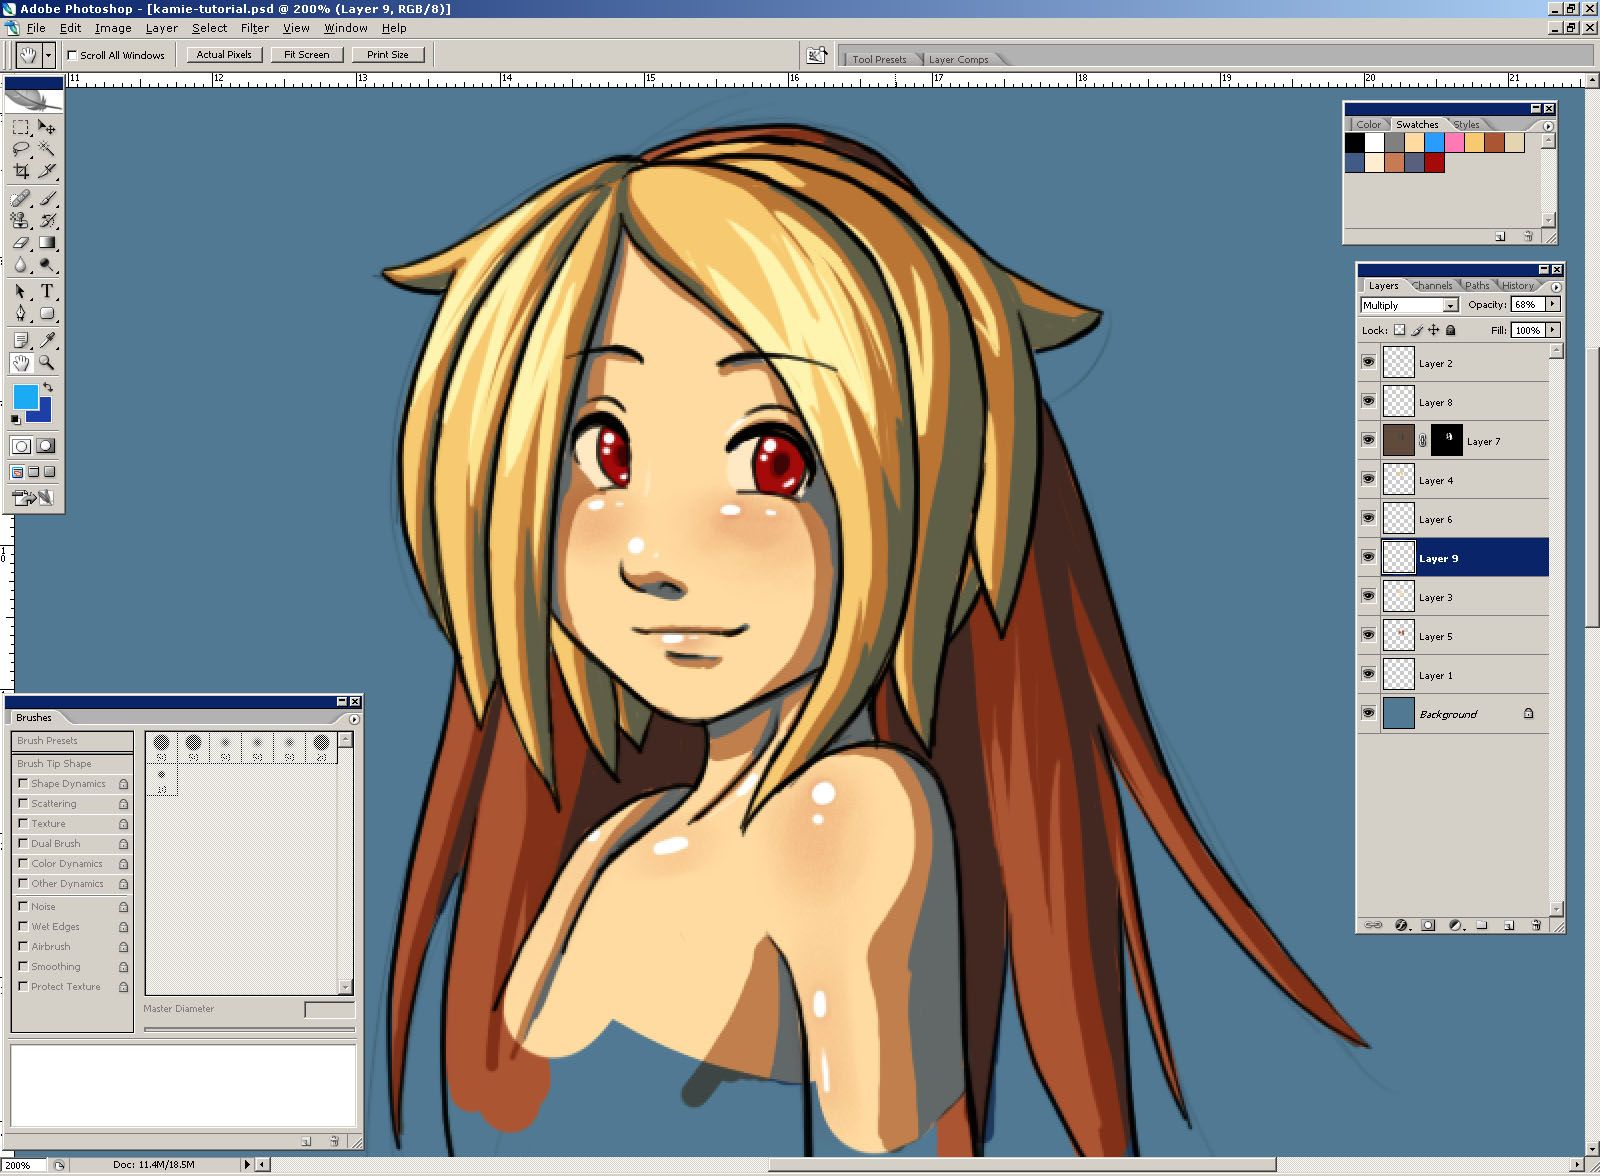 cel shading with pens - Google Search